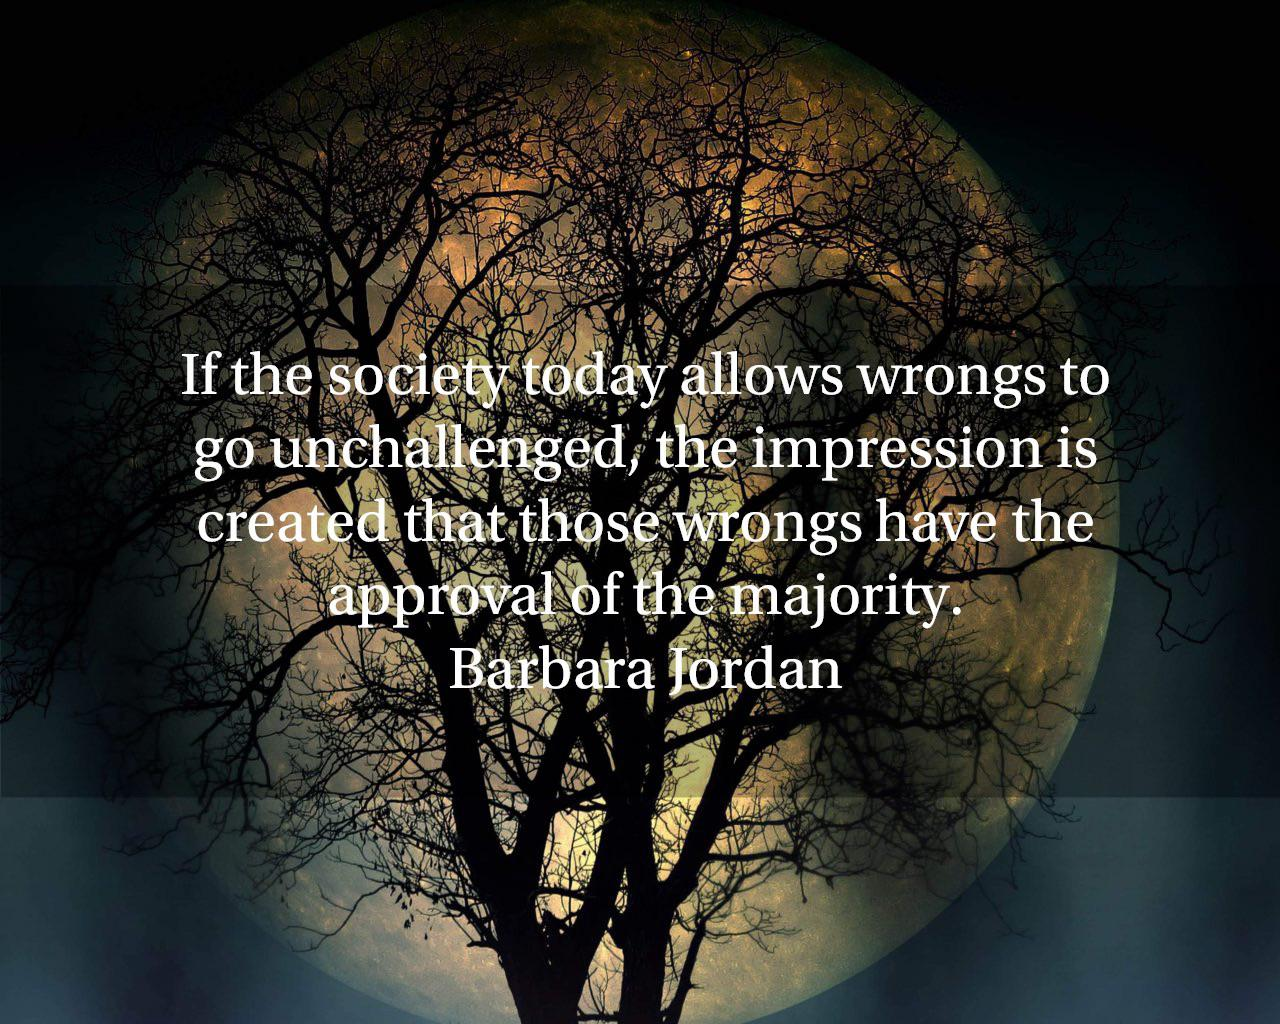 """If the society today allows wrongs to go unchallenged, the impression is created that those wrongs have the approval of the majority."" – Barbara Jordan [1280 x 1024]"